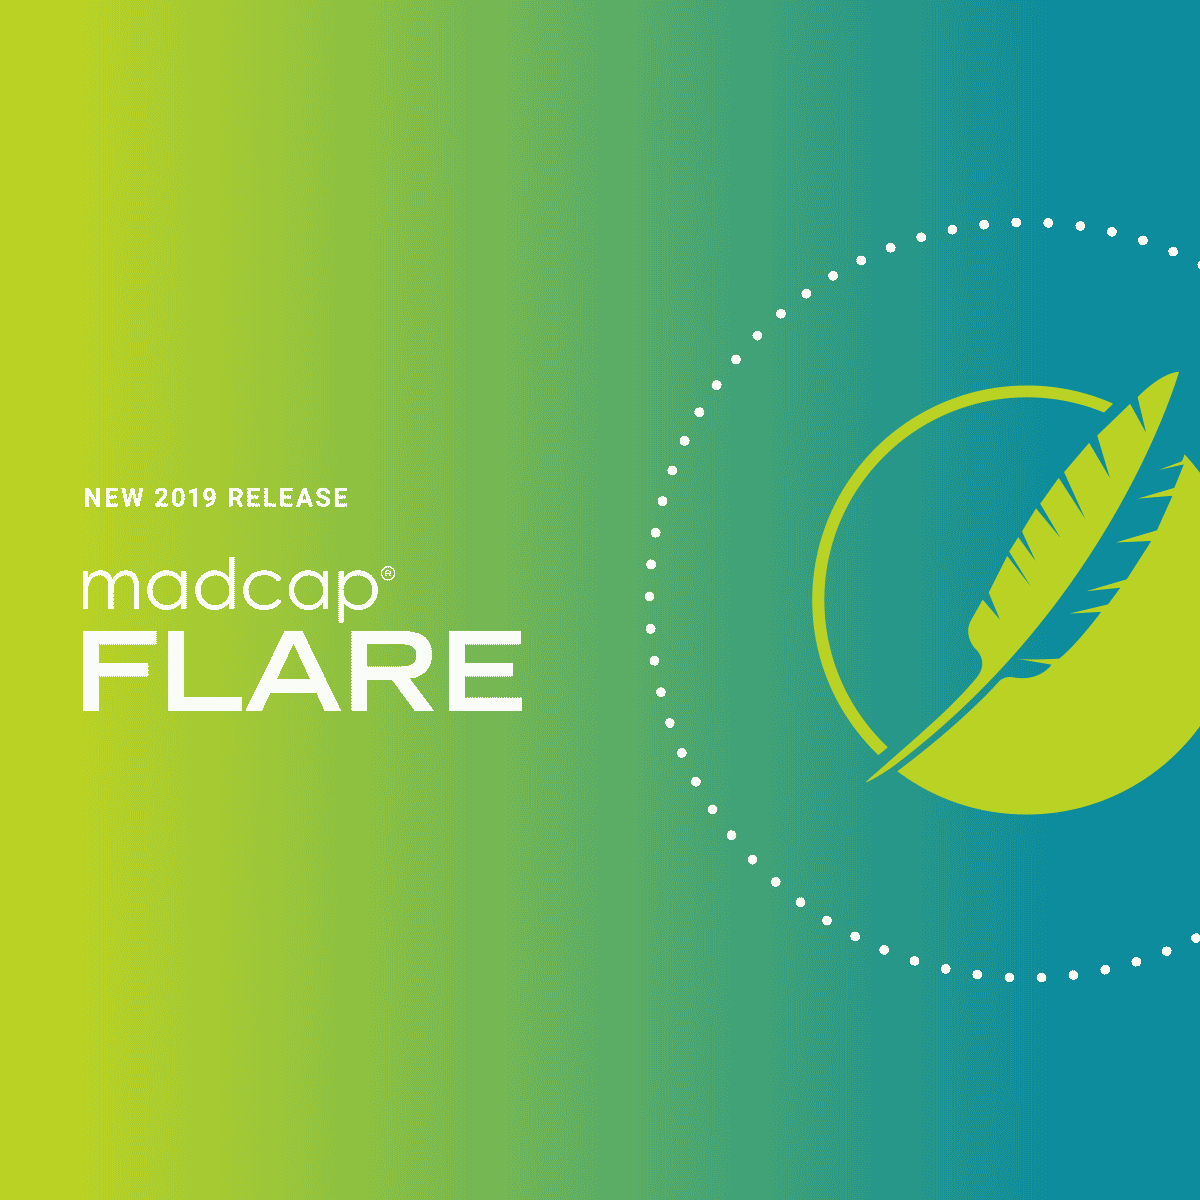 what's new Flare 2019 release